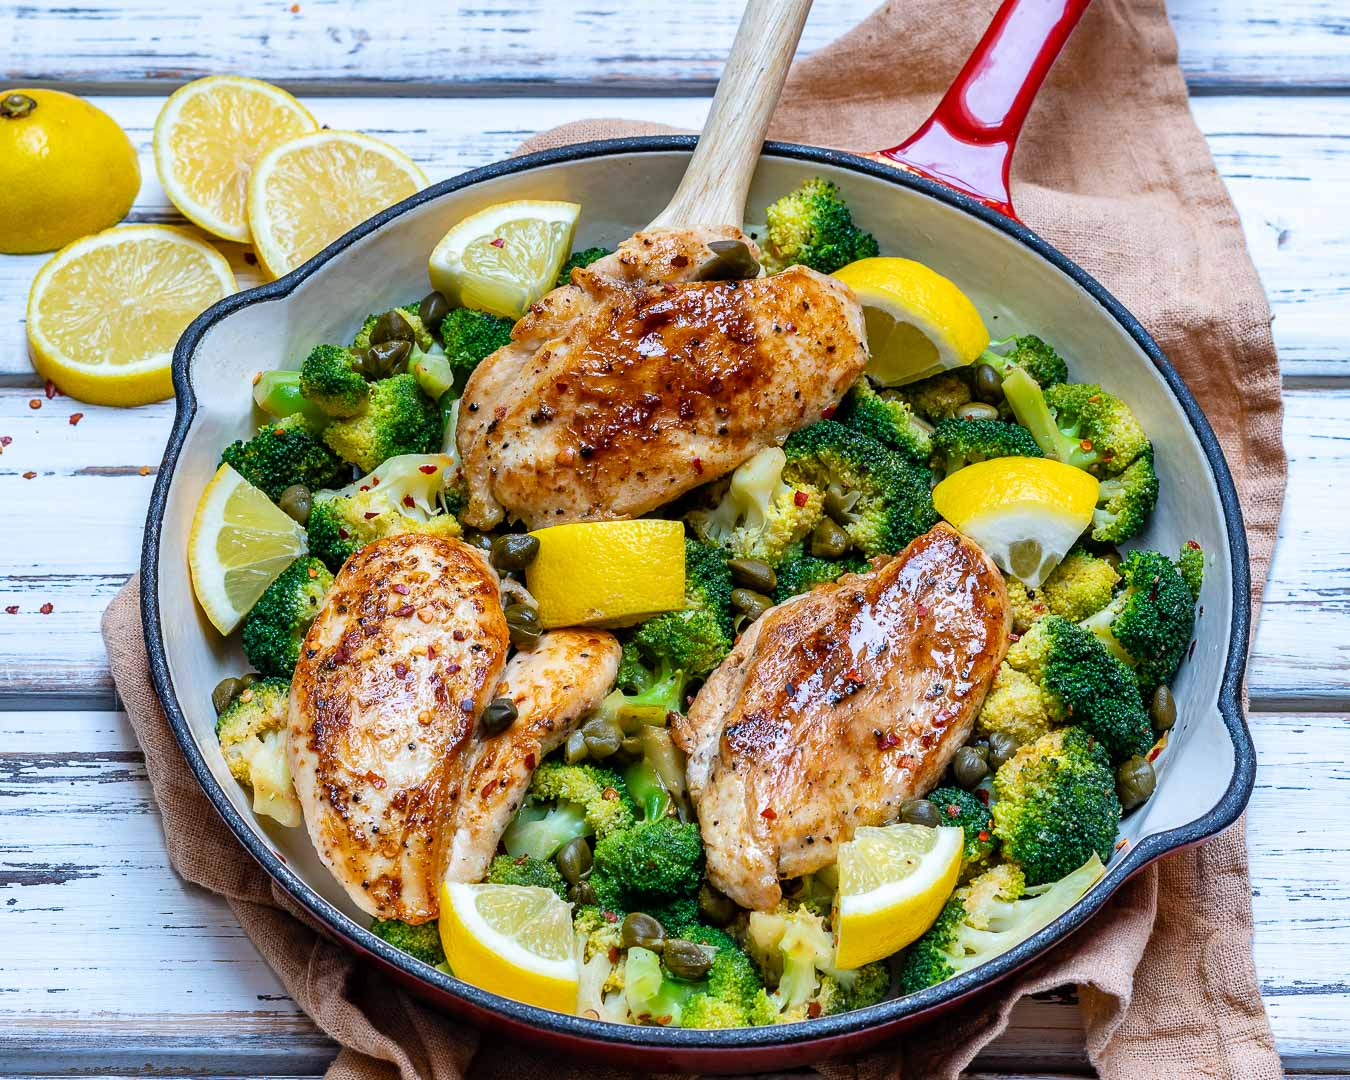 Eat Clean Lemony Chicken Broccoli Skillet Meal